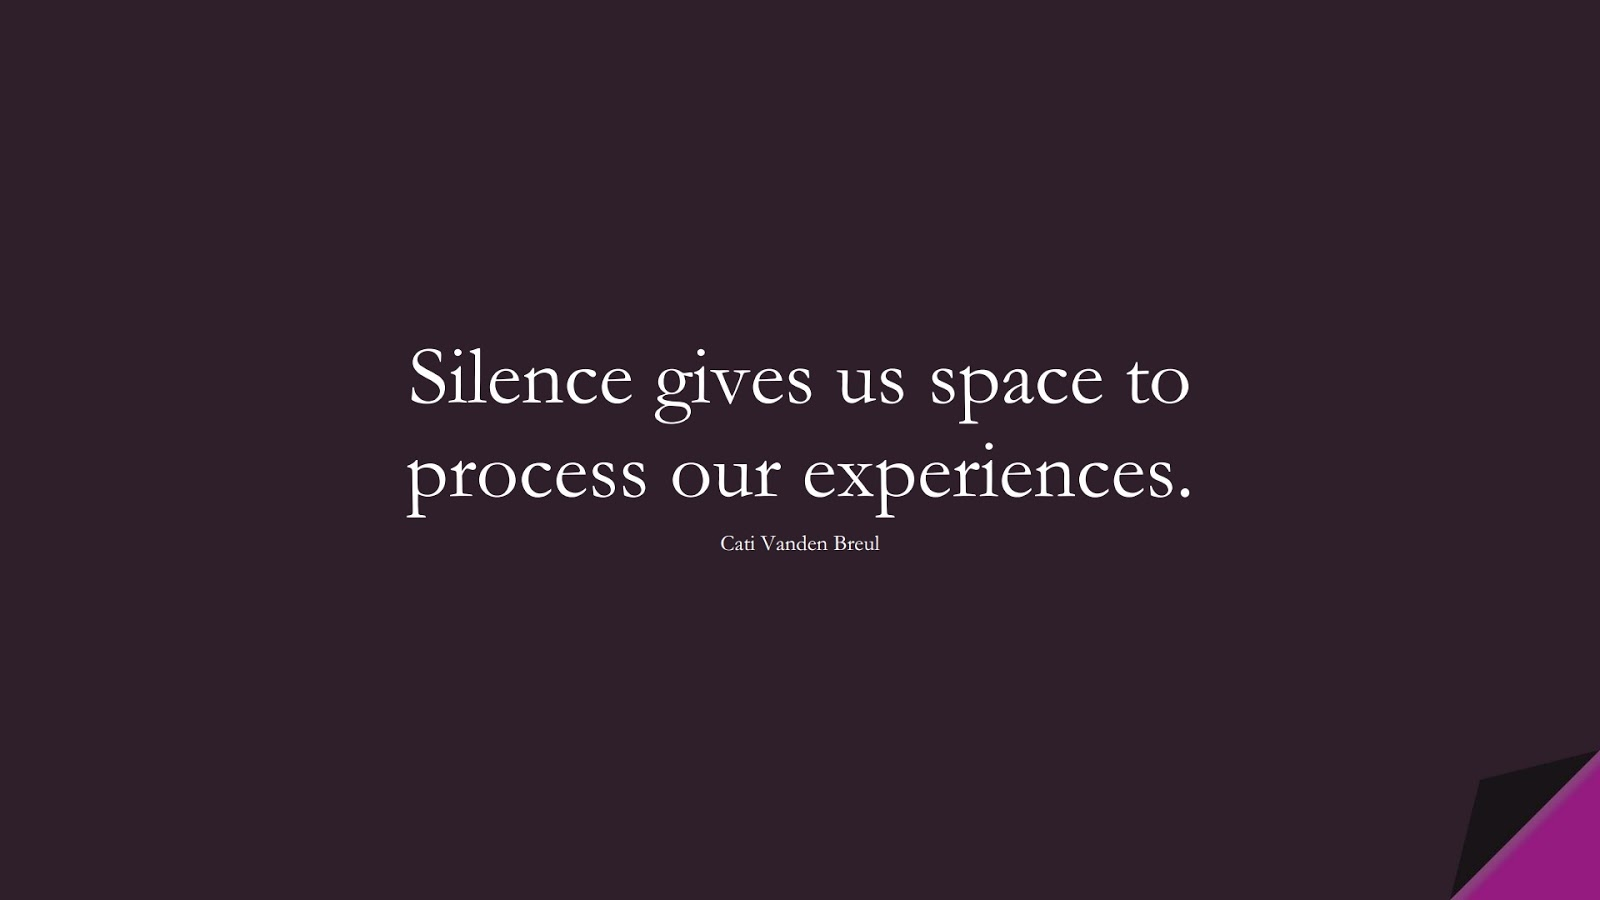 Silence gives us space to process our experiences. (Cati Vanden Breul);  #CalmQuotes